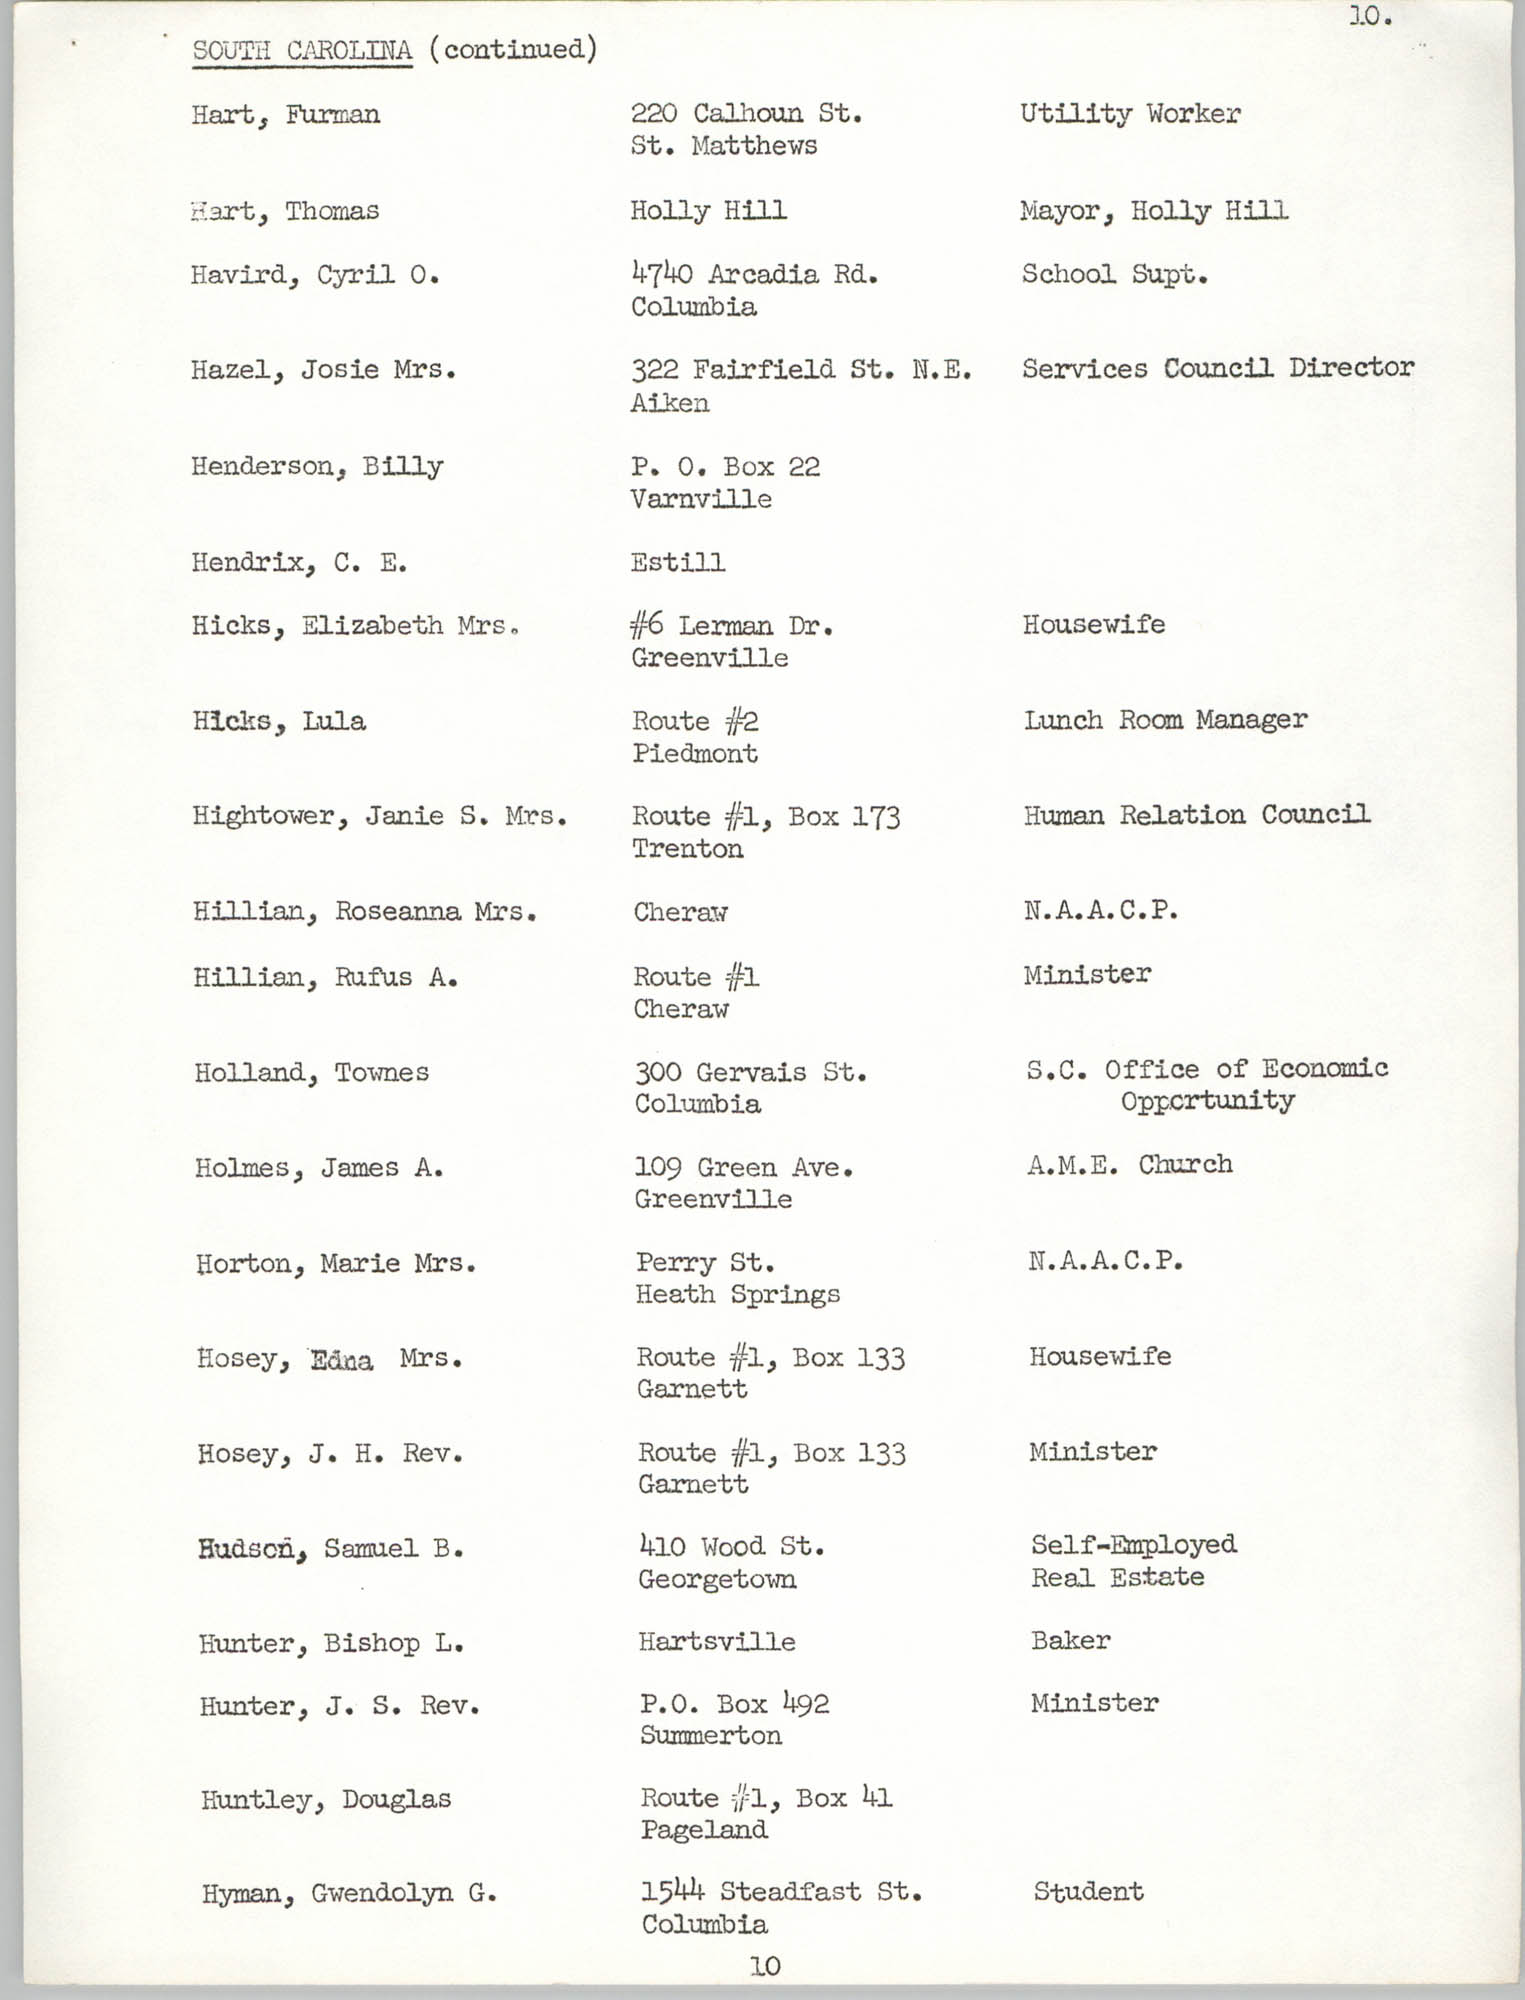 Registration, U.S. Commission on Civil Rights, Statewide Education Desegregation Conference, Page 10